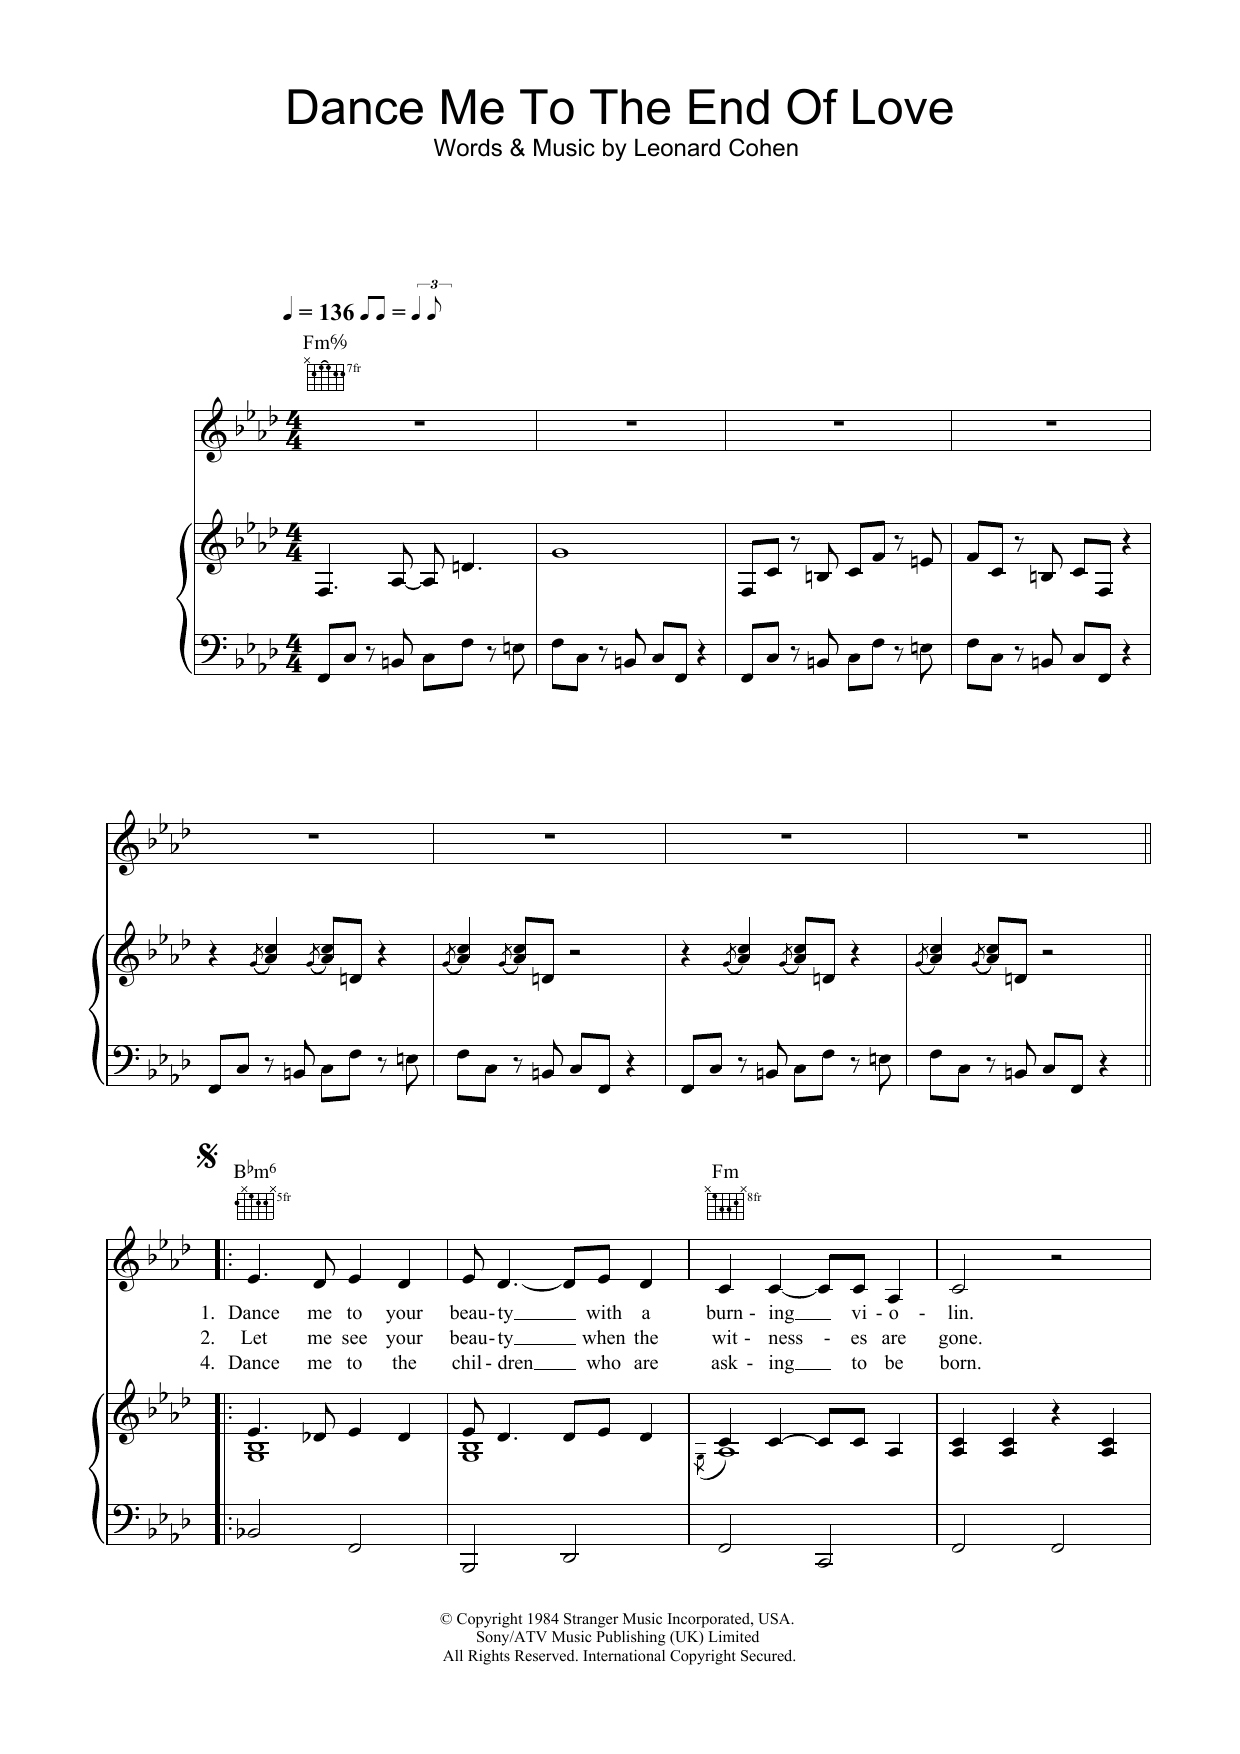 Dance Me To The End Of Love Sheet Music By Leonard Cohen For Ukulele Burns Guitar Wiring Diagram Noteflight Marketplace